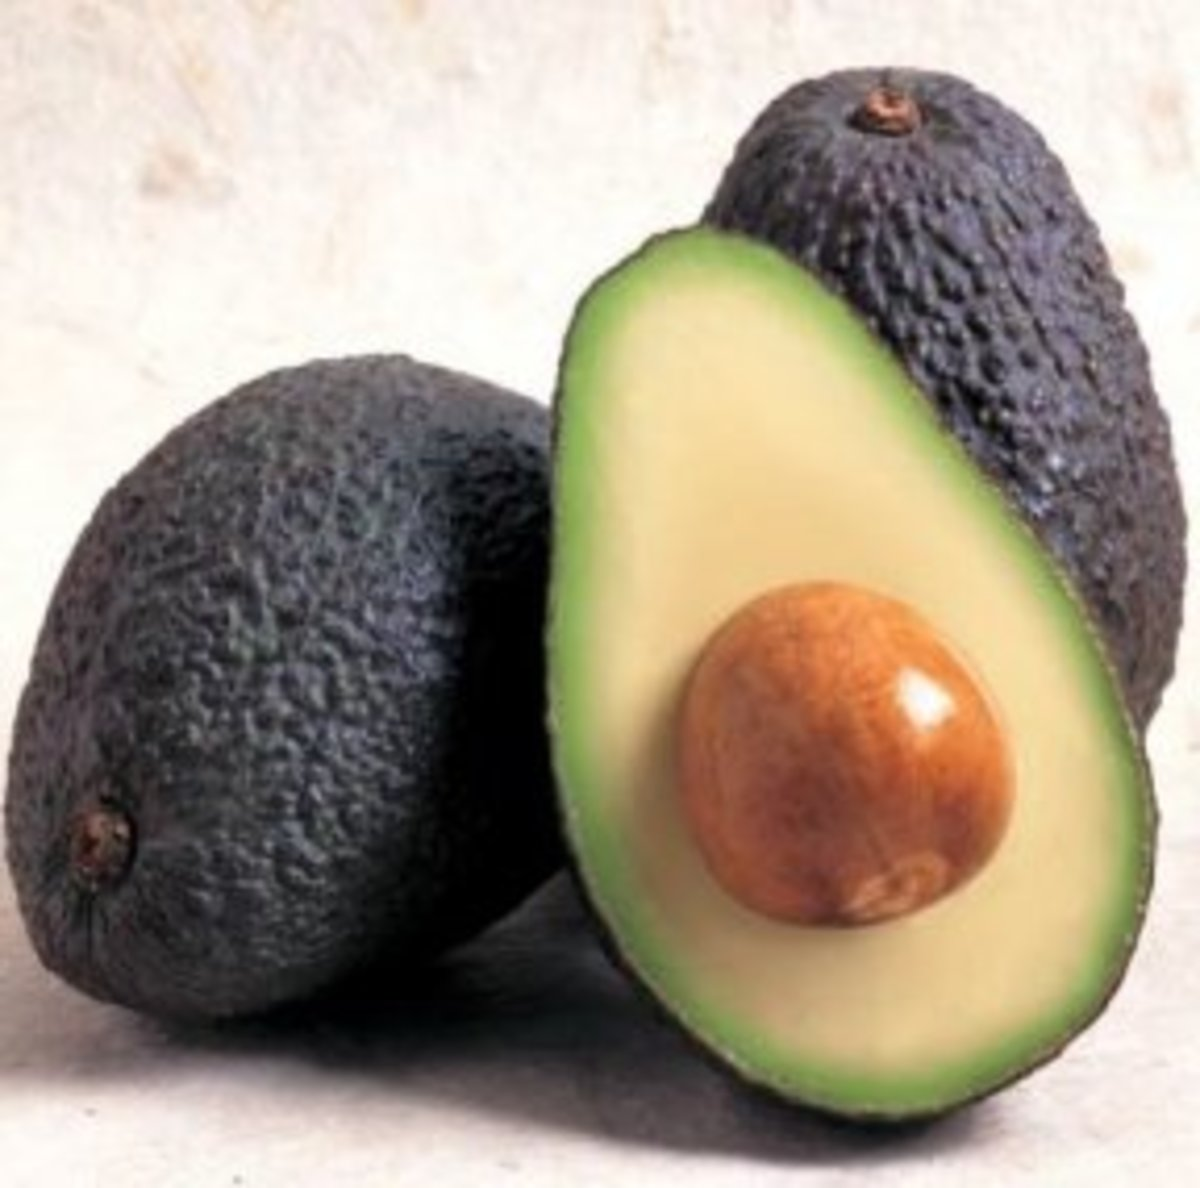 AVOCADO CURES PROSTATE CANCER, ORAL CANCER AND HELPS DIABETES